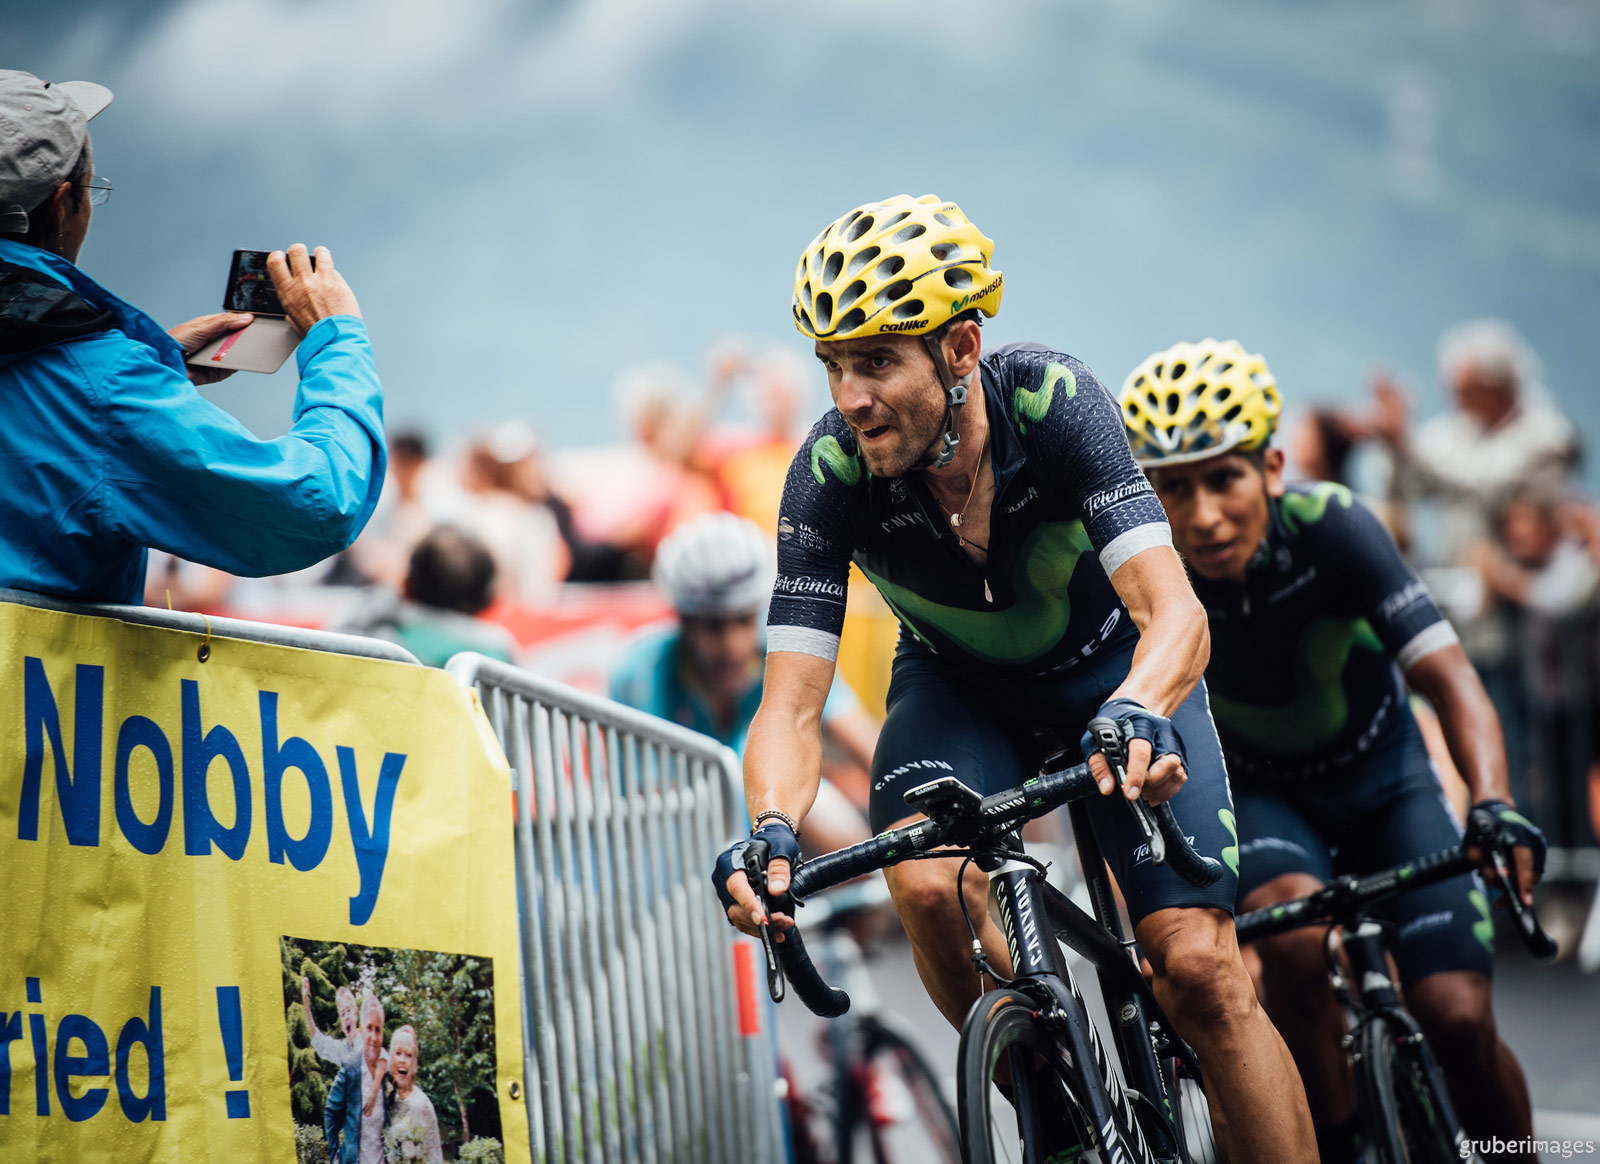 Movistar riders Alejandro Valverde and Nairo Quintana race towards the line on the final climb of Saint-Gervais Mont Blanc, stage 19 of the 2016 Tour de France.